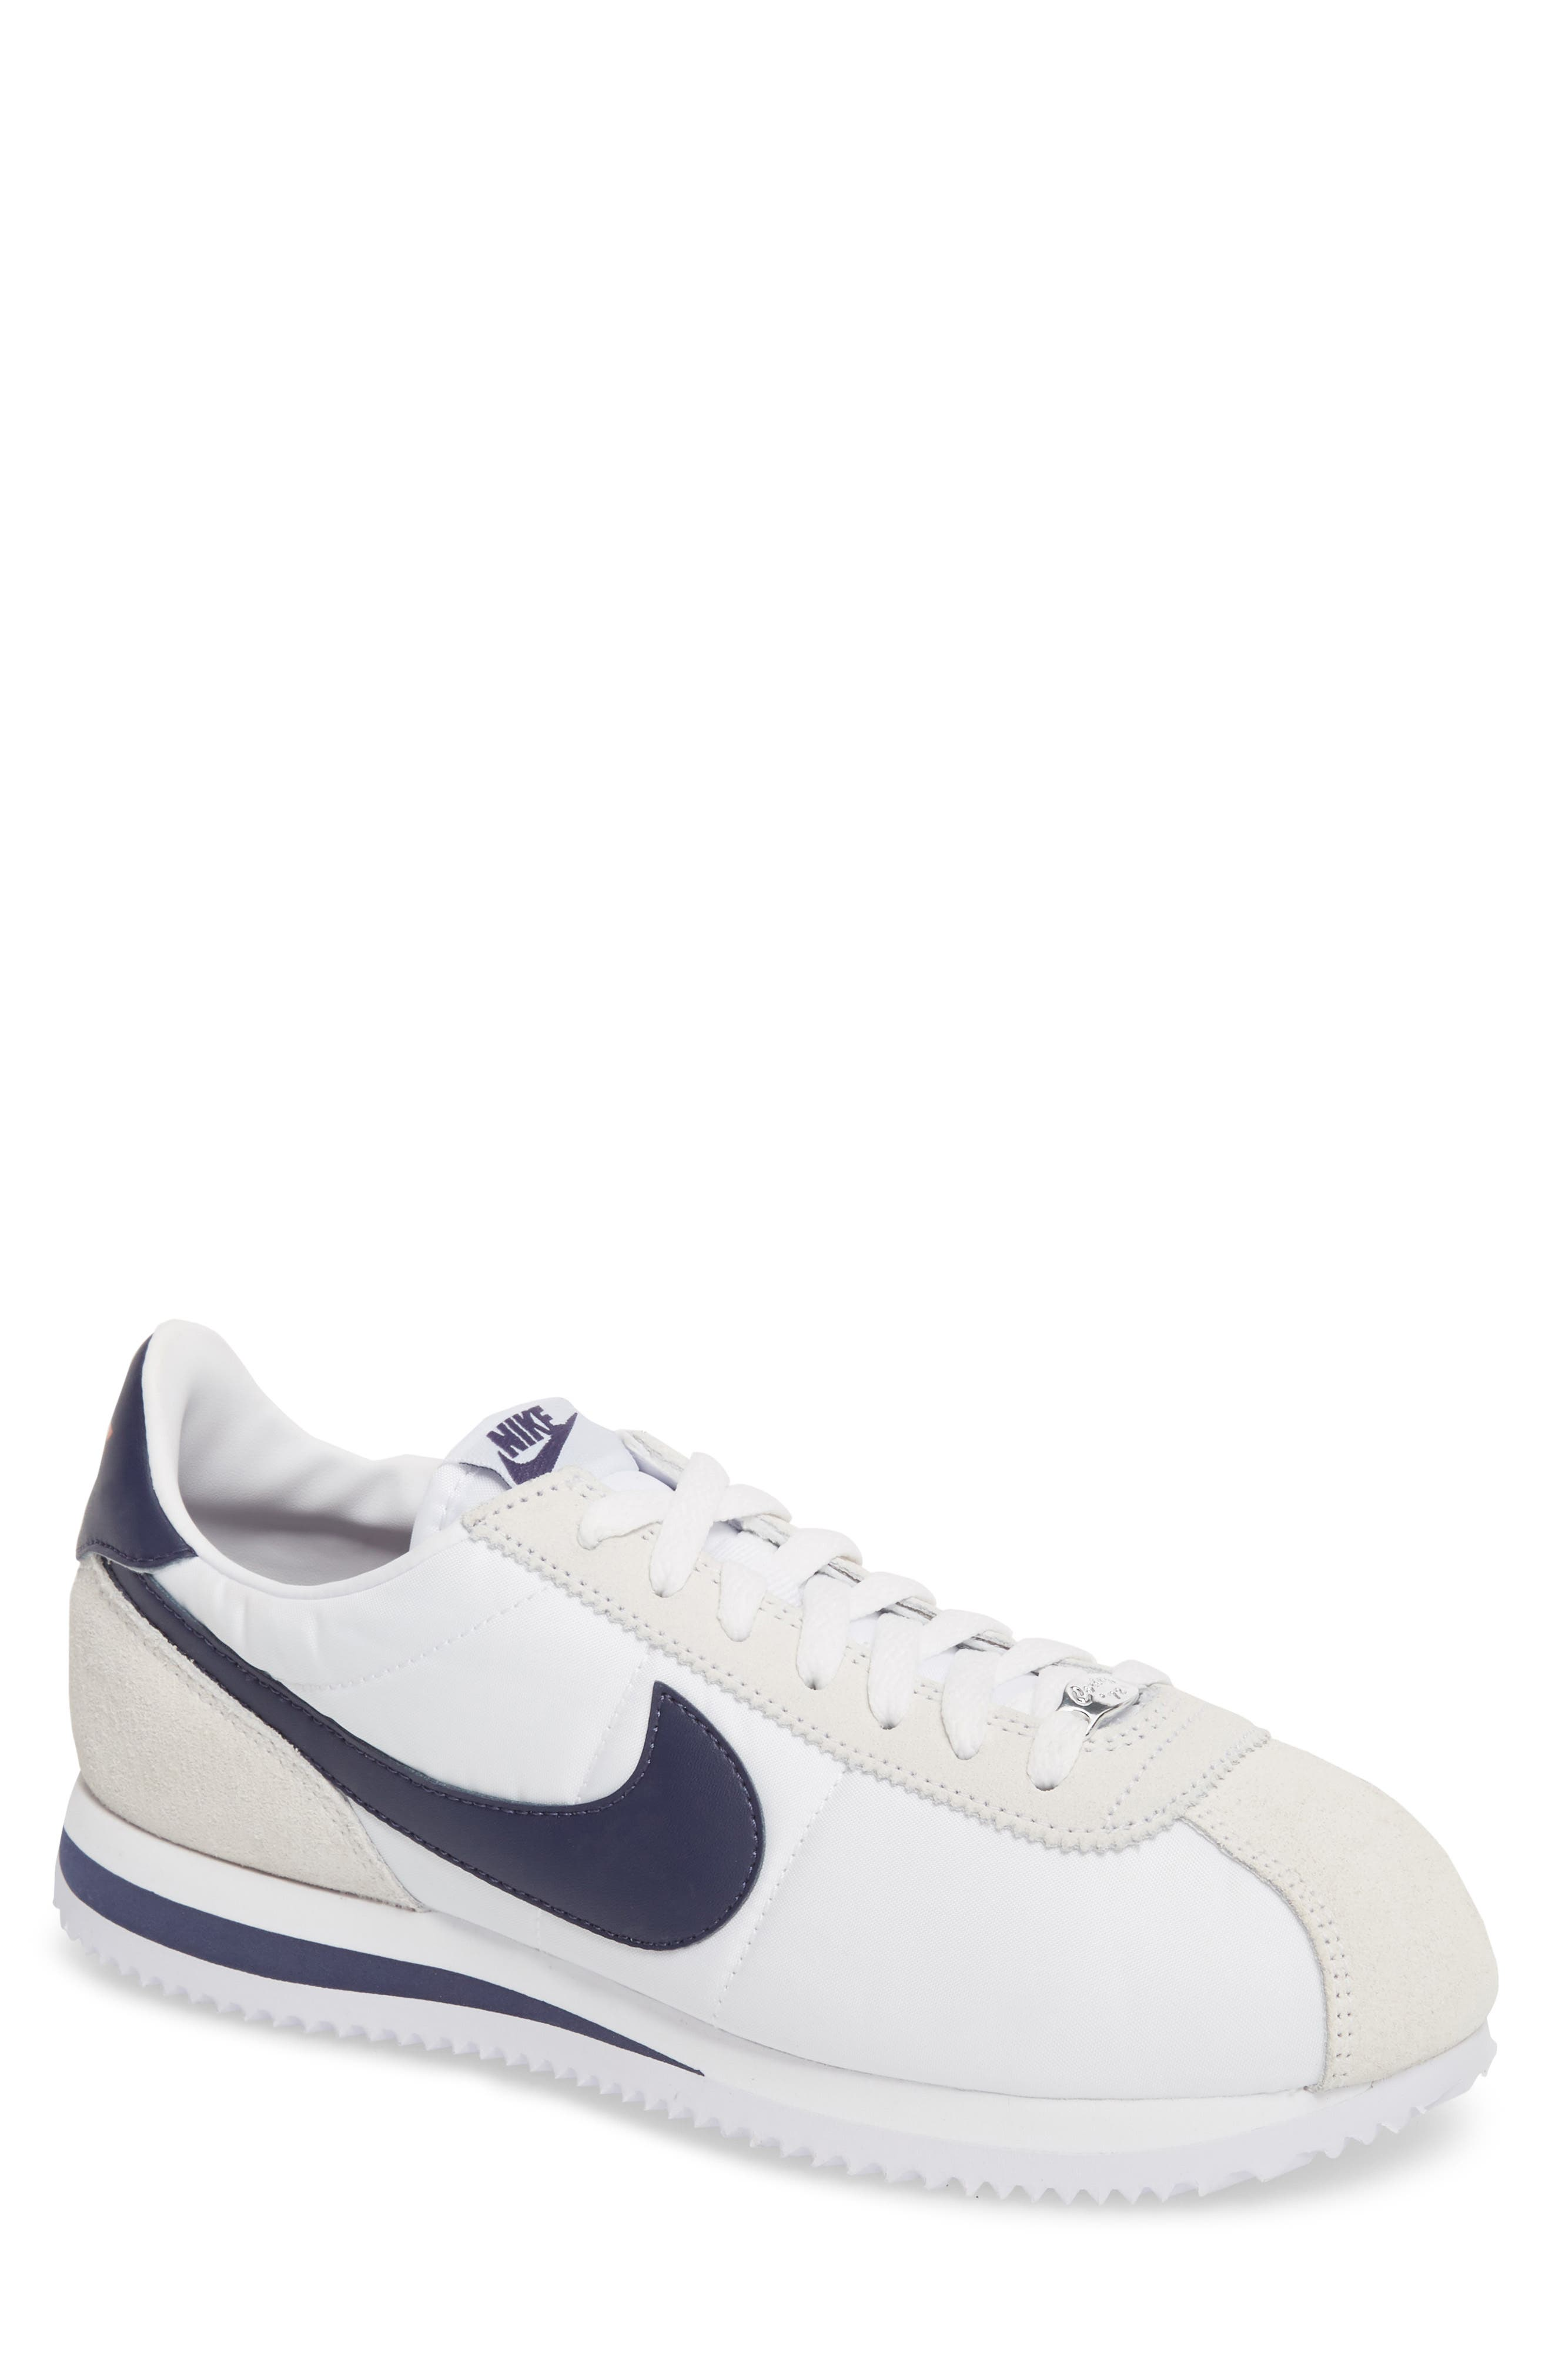 Cortez Basic Nylon Sneaker,                         Main,                         color, 102